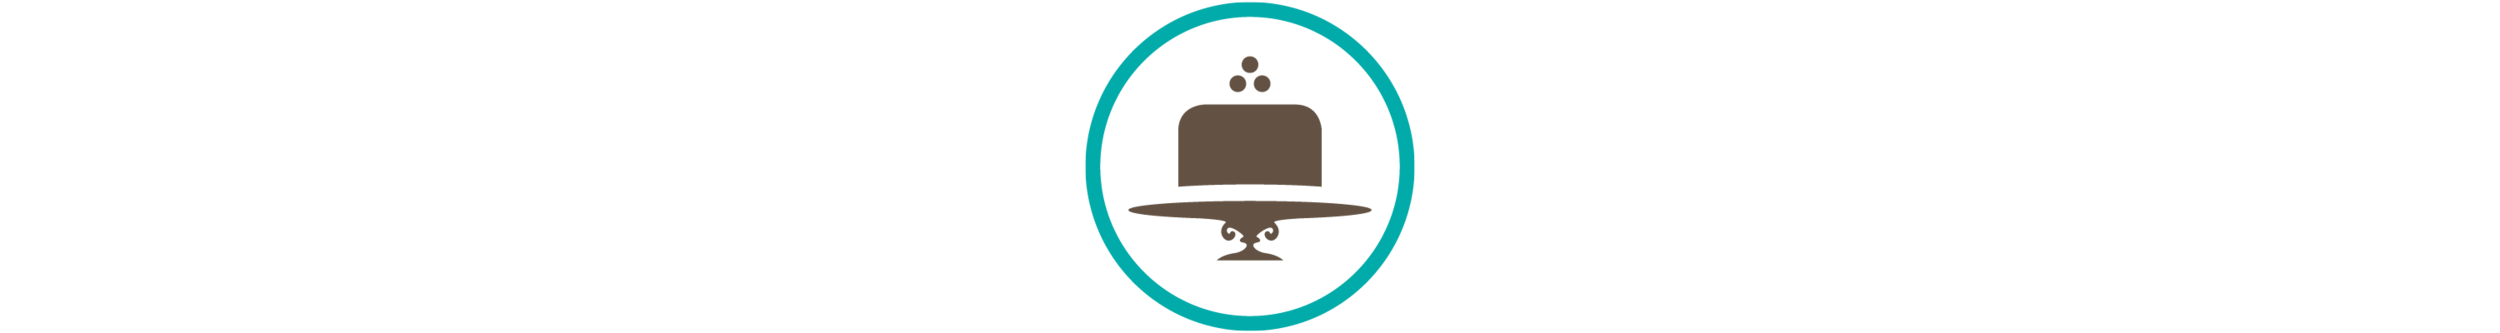 The_Little_Cake_Maker_Perth_Baker_CustomCakes_DayCakes_Slices_Tarts_Cupcakes_Home_Logo_Icon.png